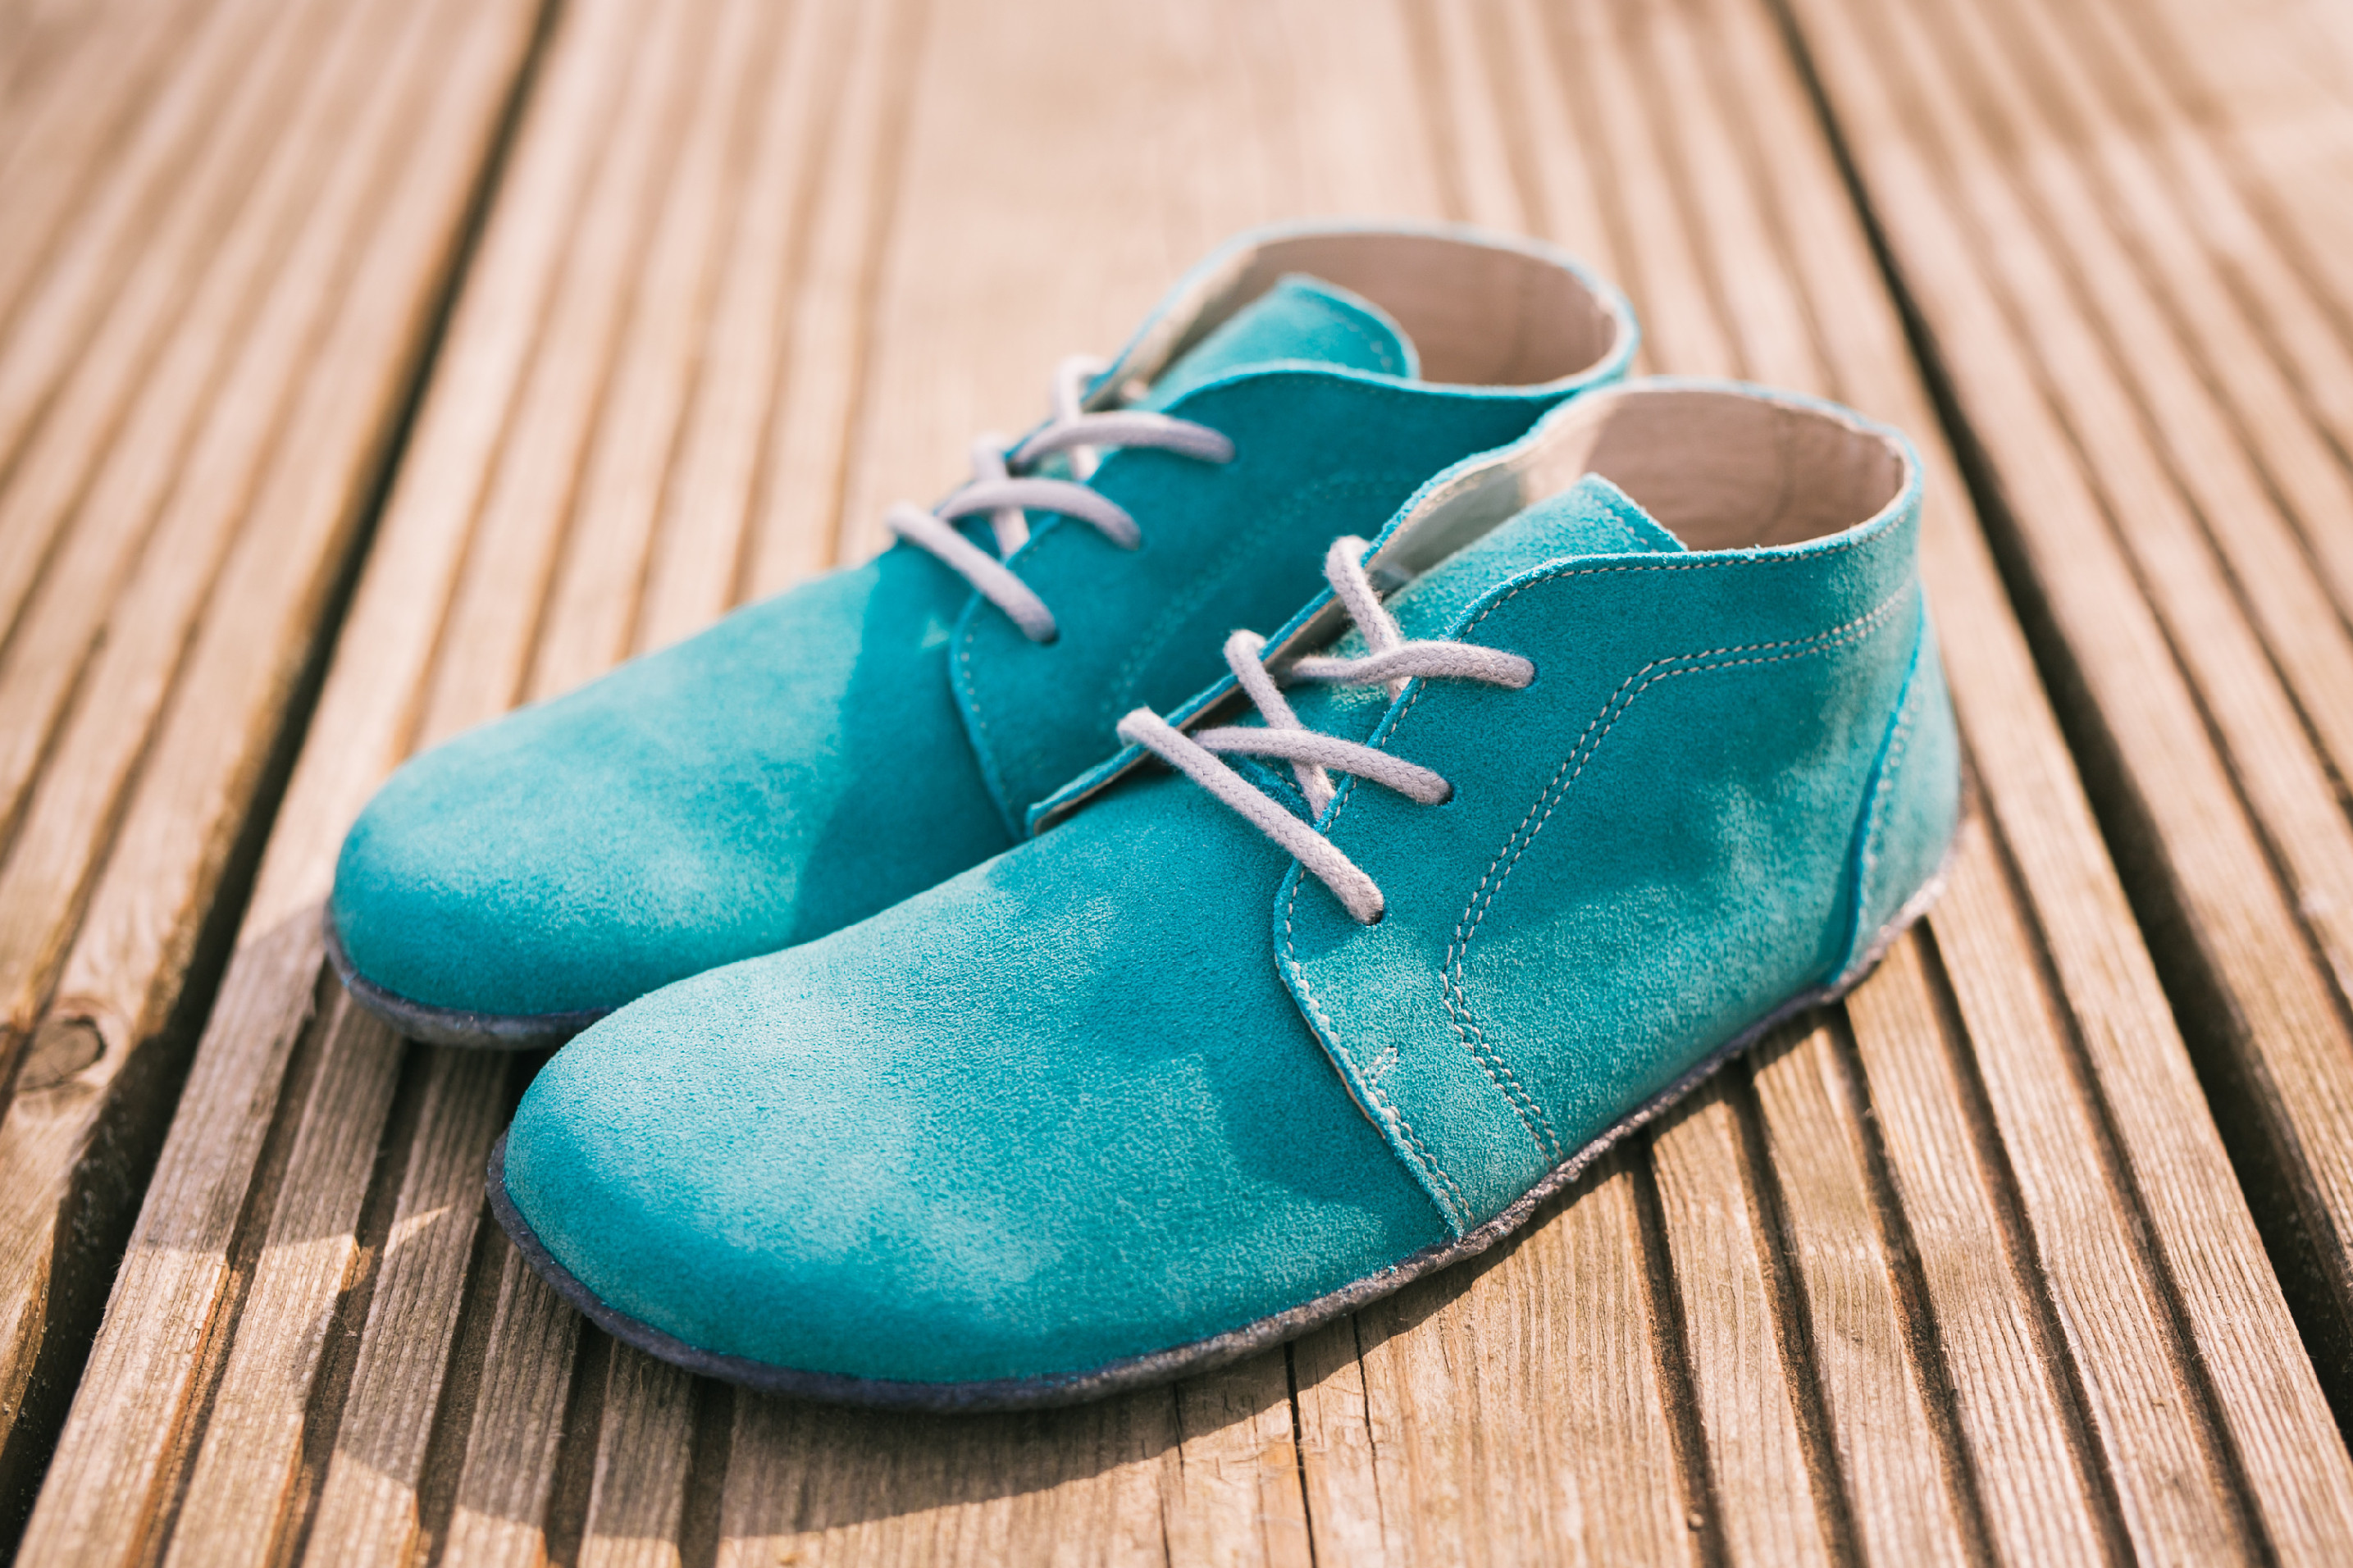 Barefoot Shoes - Be Lenka All-year - Turquoise 46